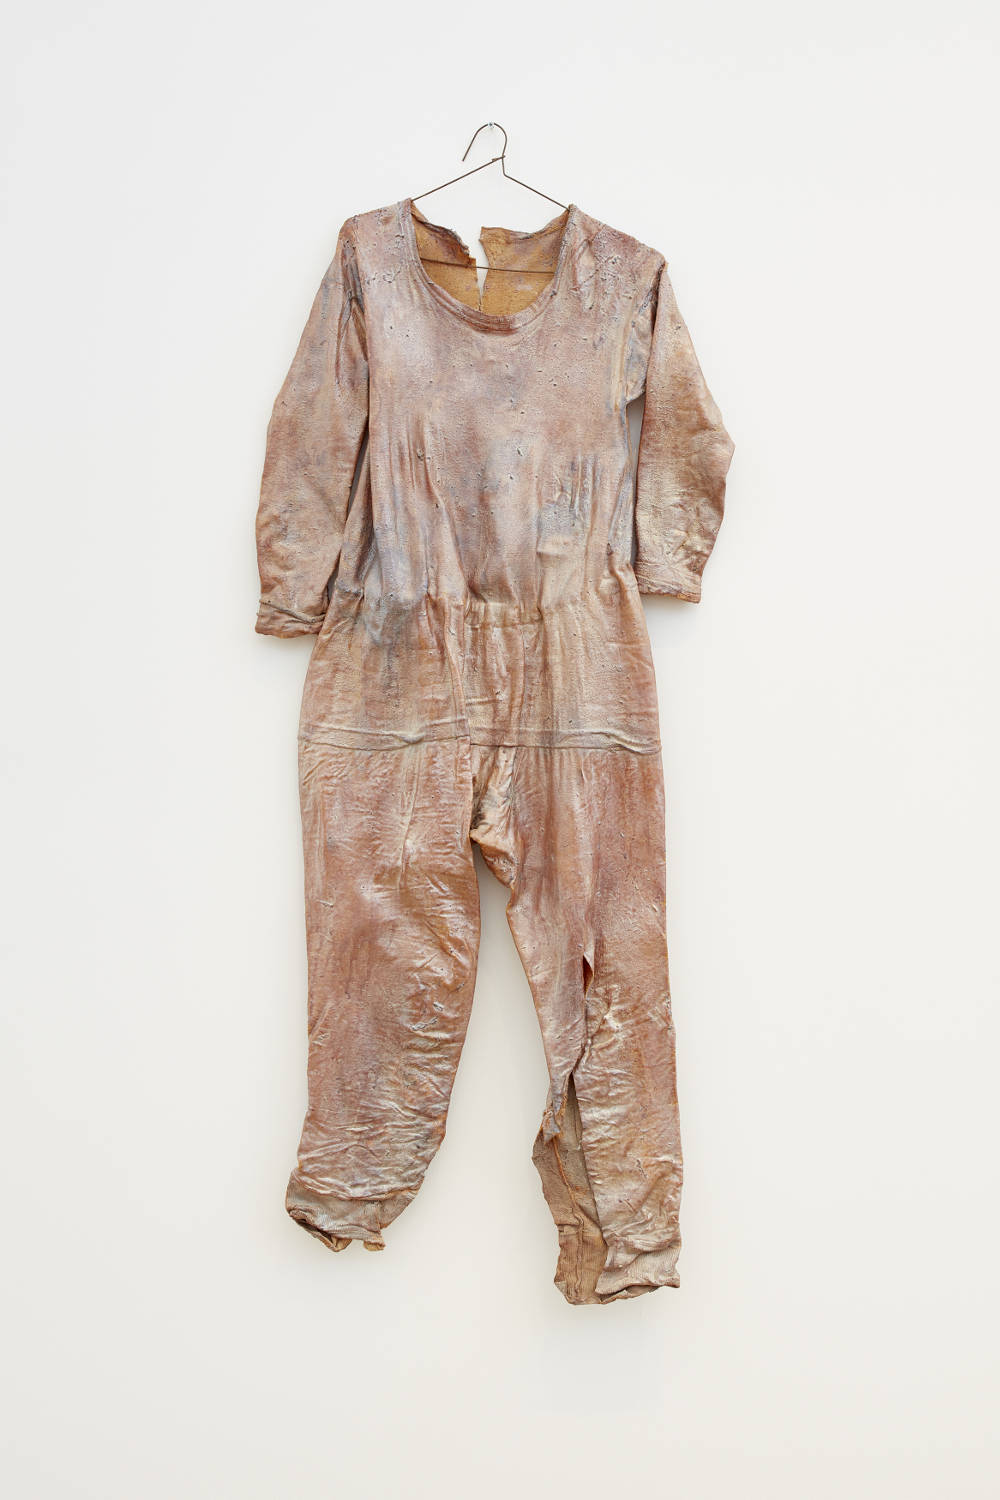 Heidi Bucher, Der Schlüpfakt der Parkettlibelle (The hatching of the parquet dragonfly), 1983. Textile garment, latex, and mother of pearl pigment 51.18 x 41.34 inches (furled) 130 x 105 cm. Photo: Matthew Herrmann © The Estate of Heidi Bucher. Courtesy the artist and Lehmann Maupin, New York, Hong Kong, and Seoul